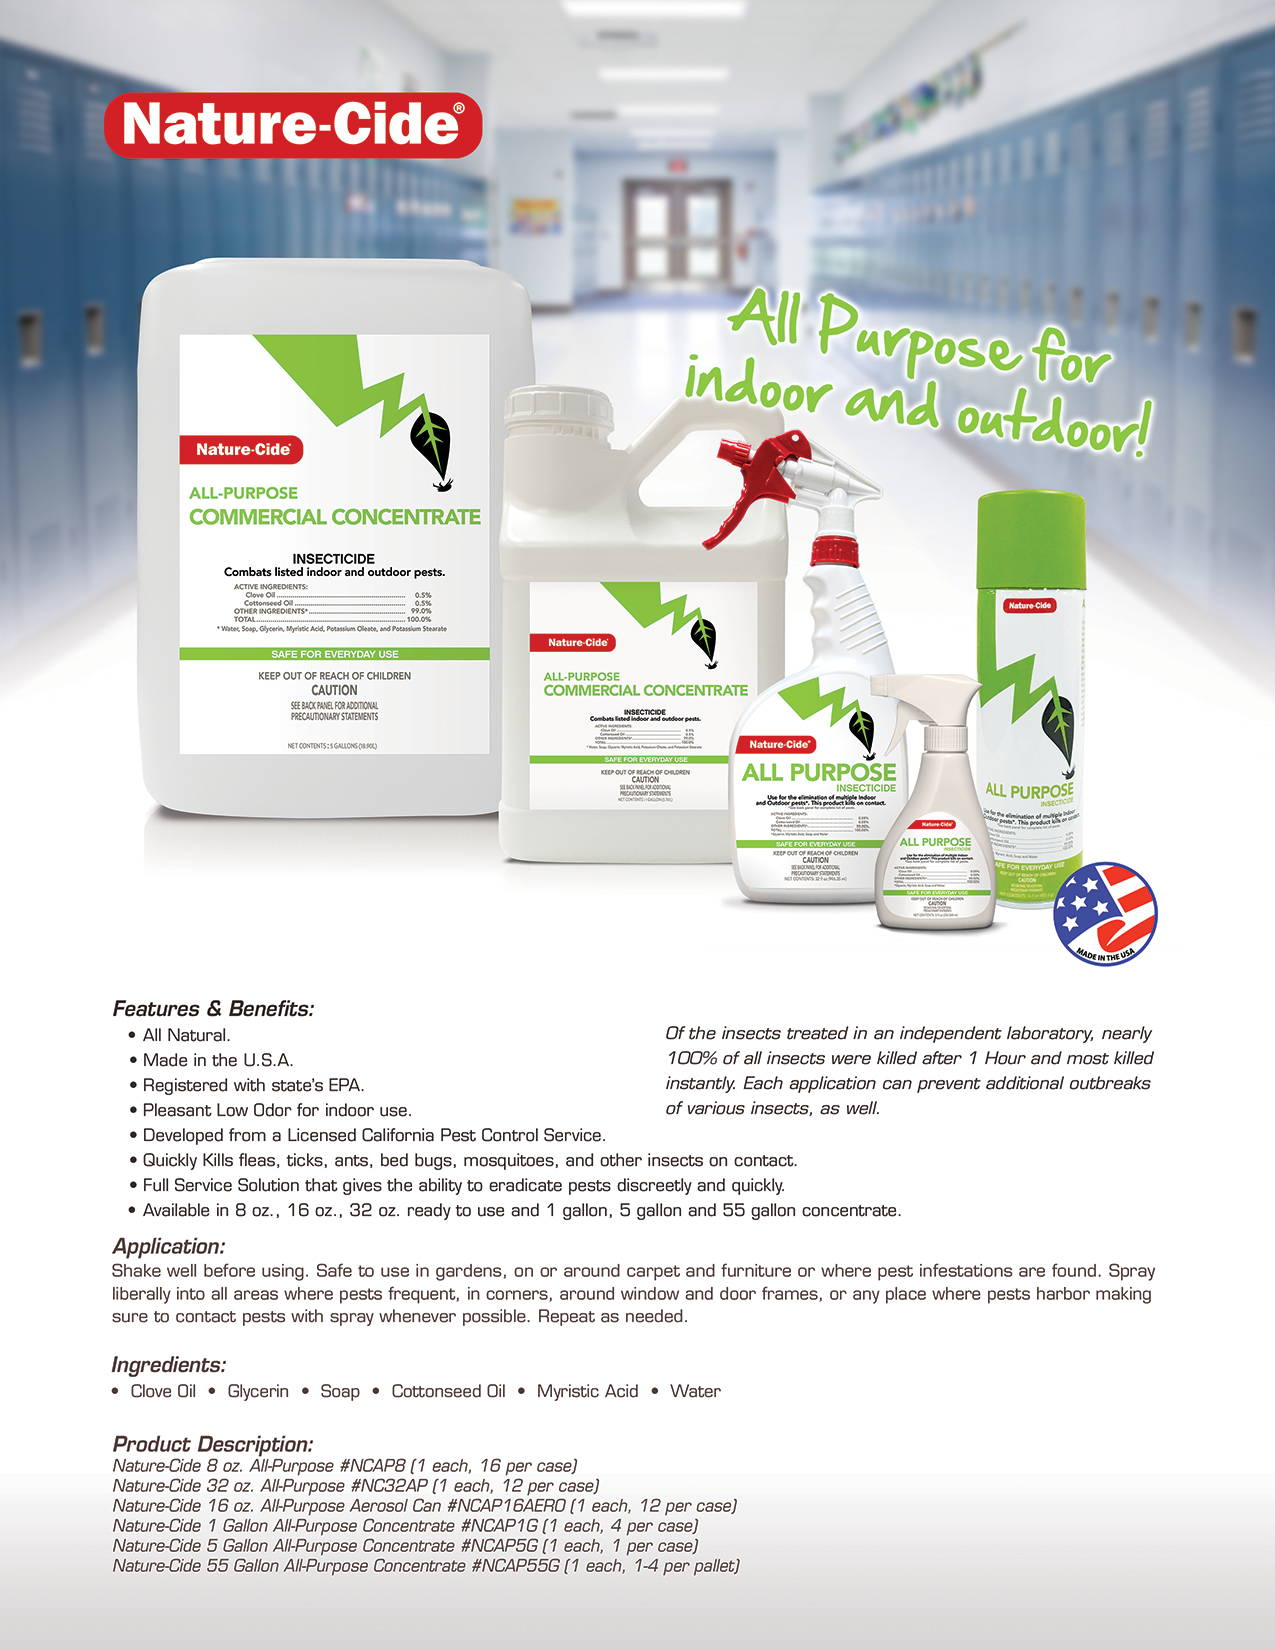 Nature-Cide All Purpose Product Info